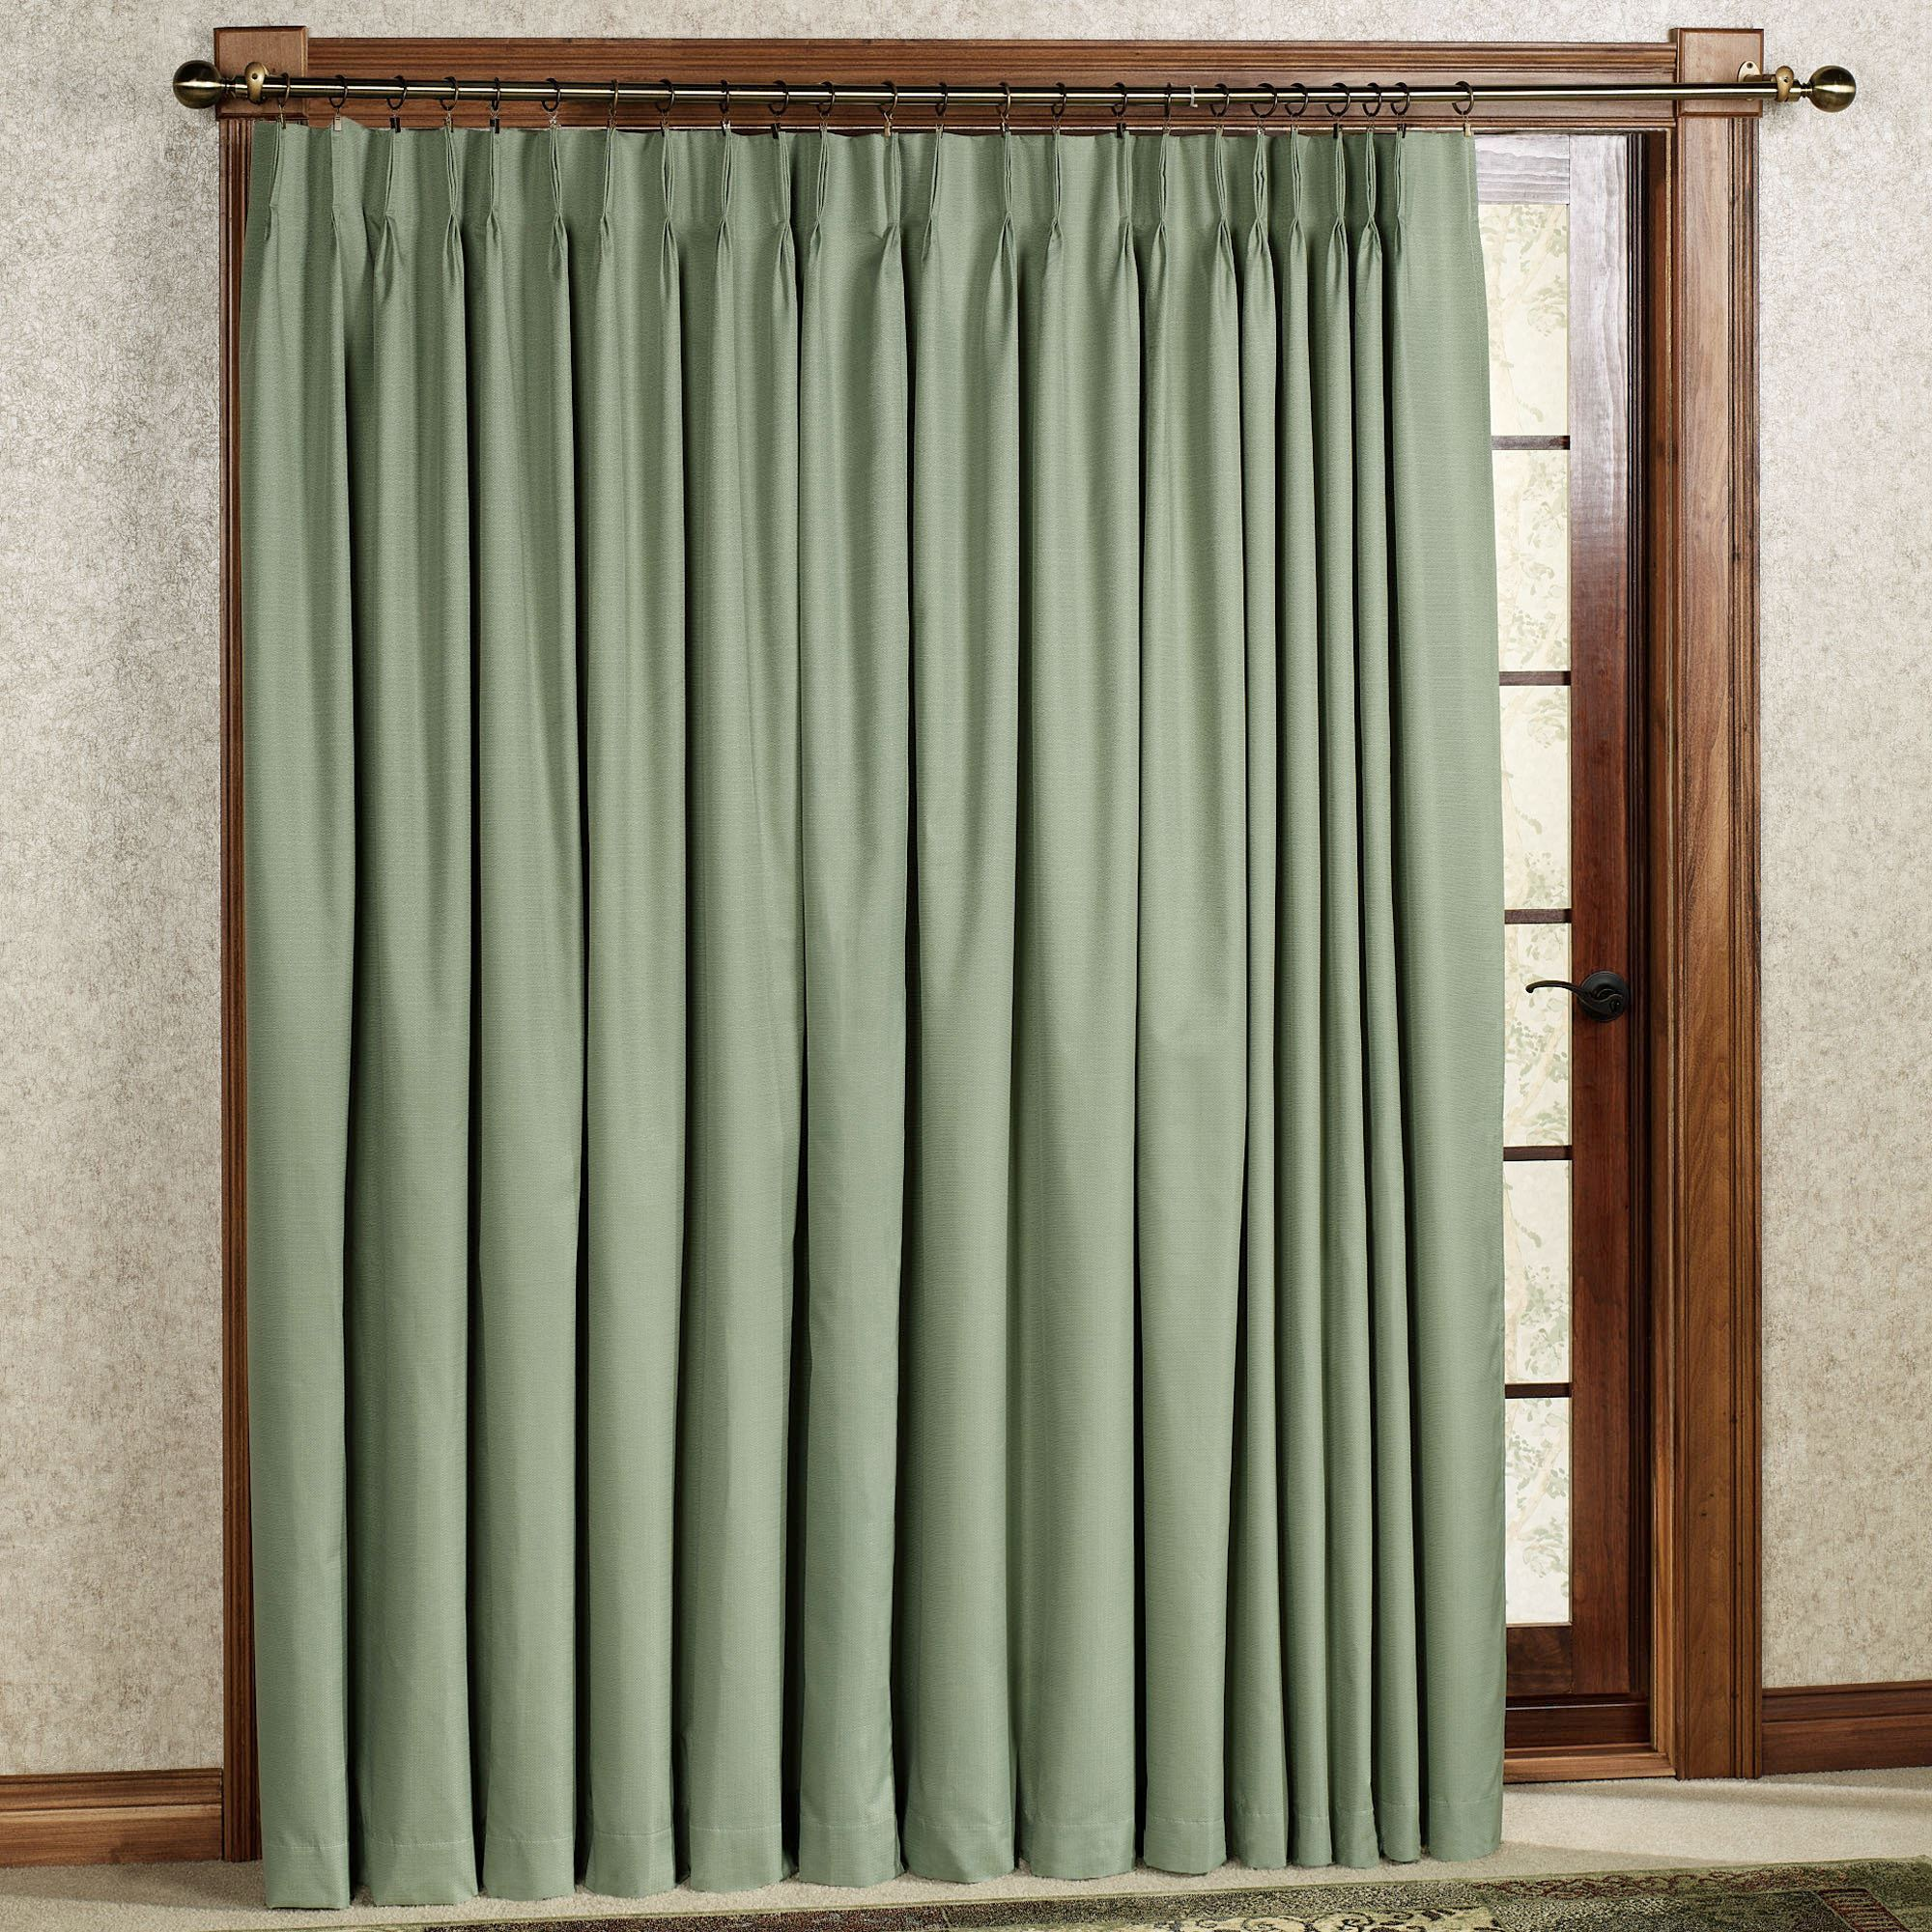 Crosby Pinch Pleat Thermal Room Darkening Patio Panel